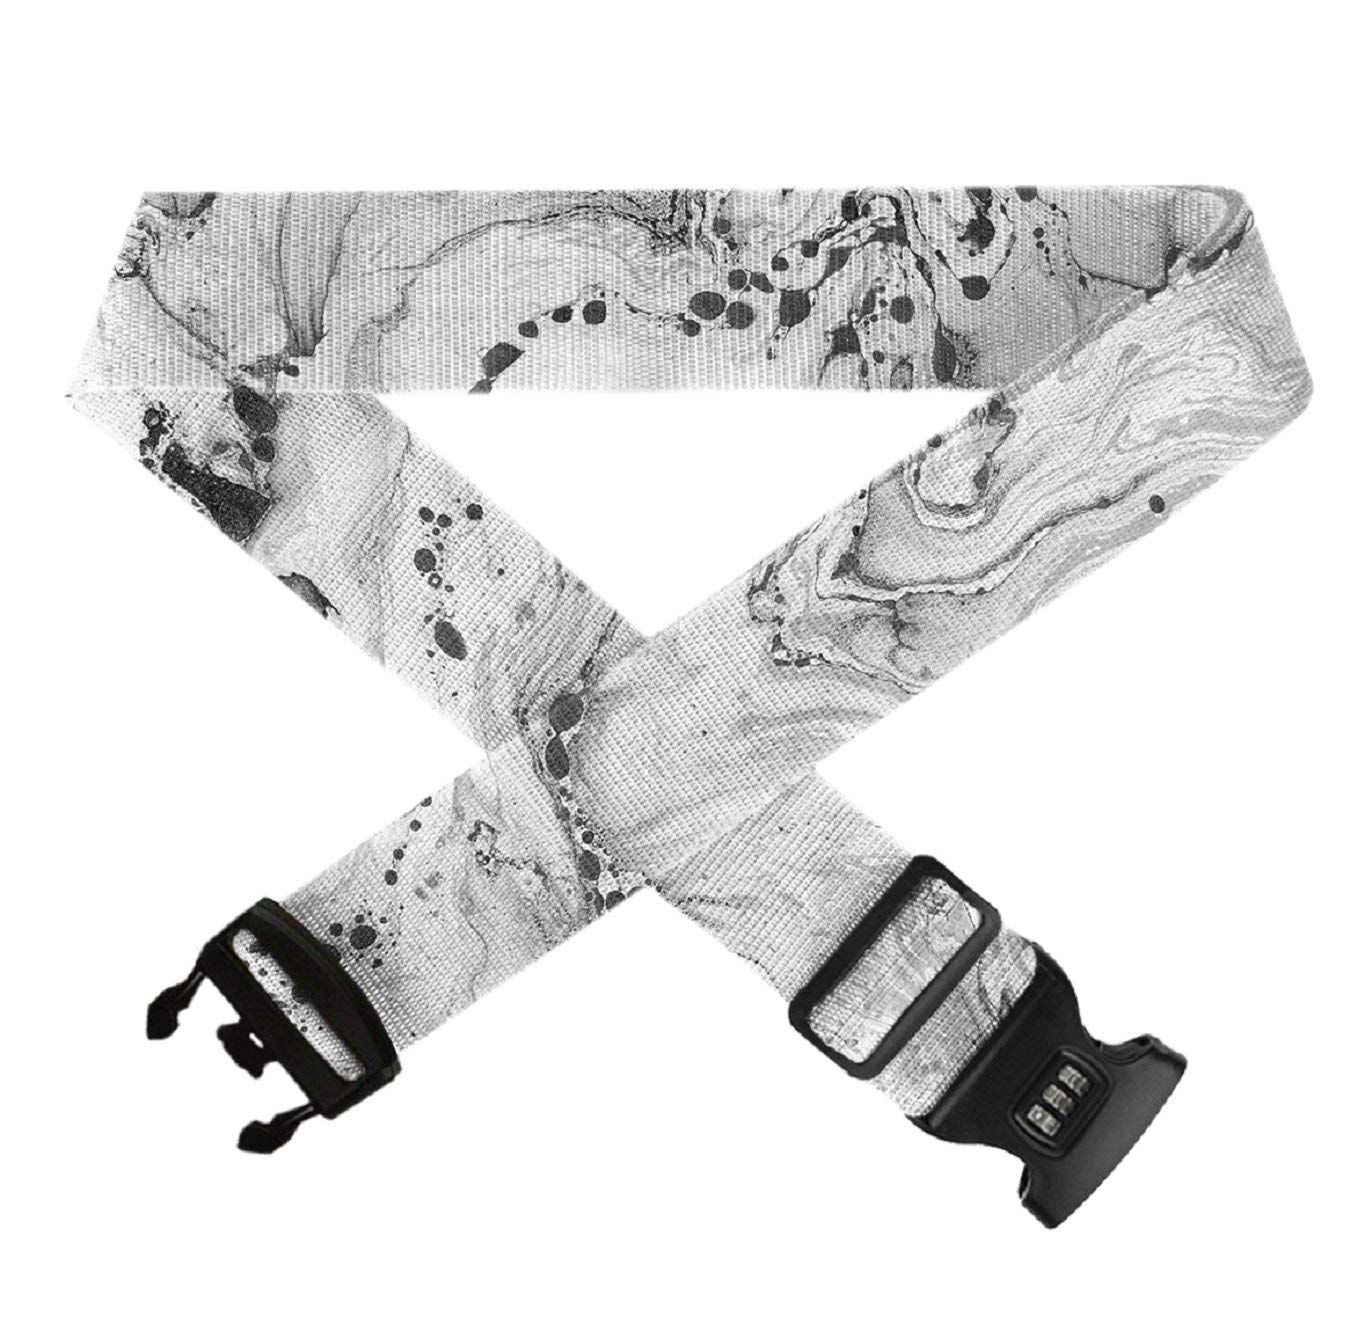 Fashion Durable Travel Bag Accessories Luggage Straps Bag Adjustable Belt Marble GLORY ART 1 Pack Suitcase Straps